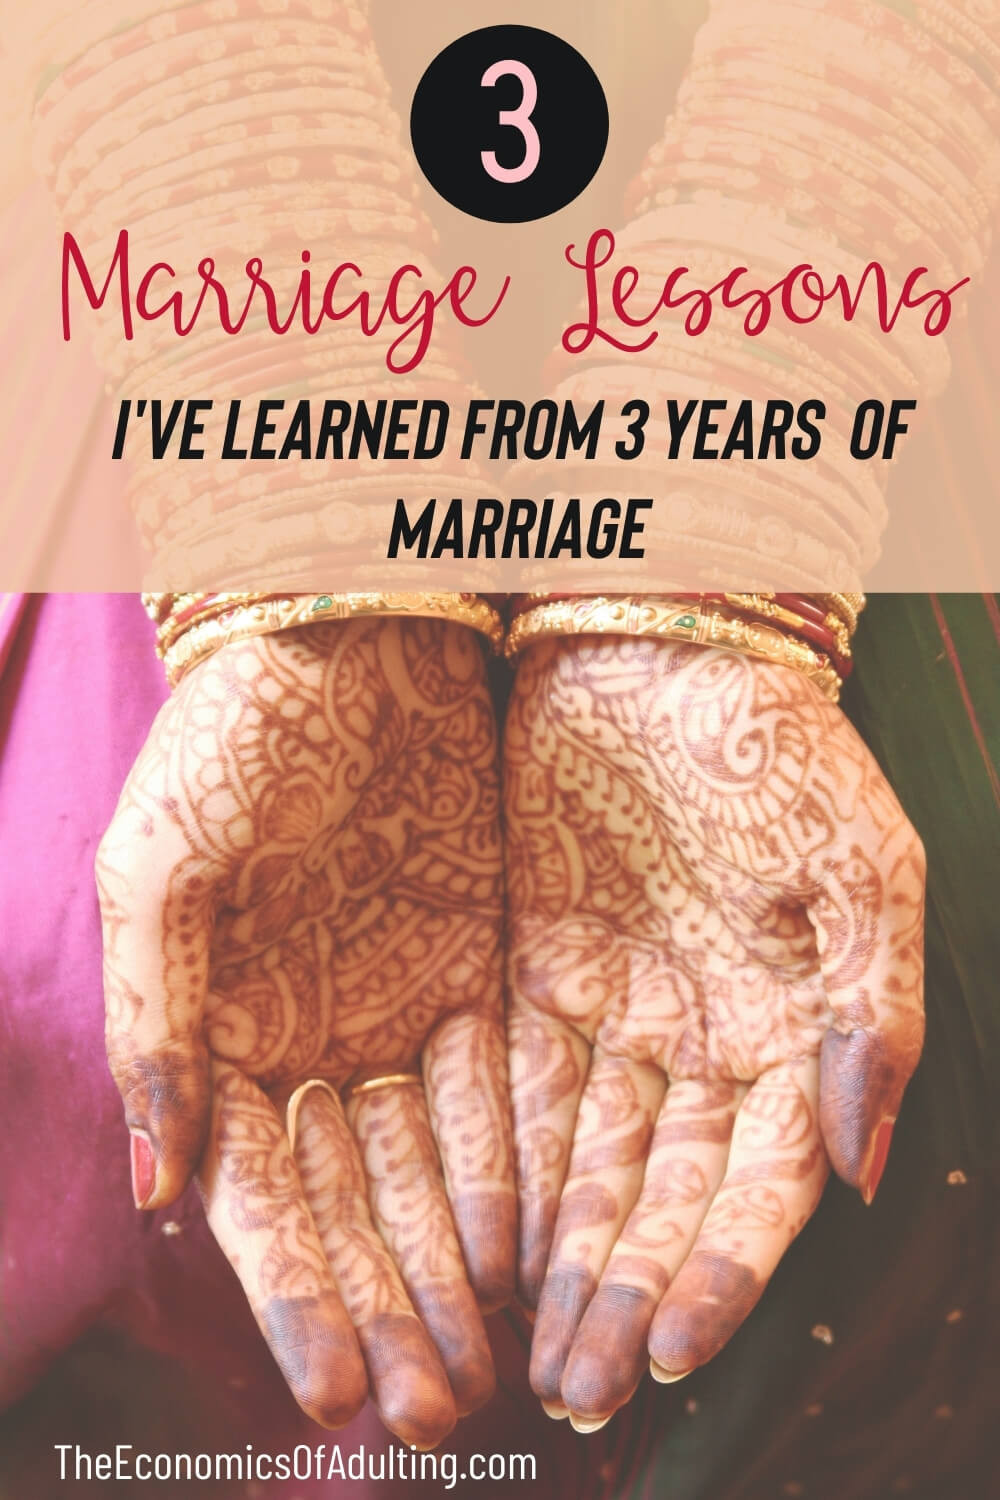 A bride with henna on her hands, with the headline '3 Marriage Lessons I've Learned From 3 Years Of Marriage' on top